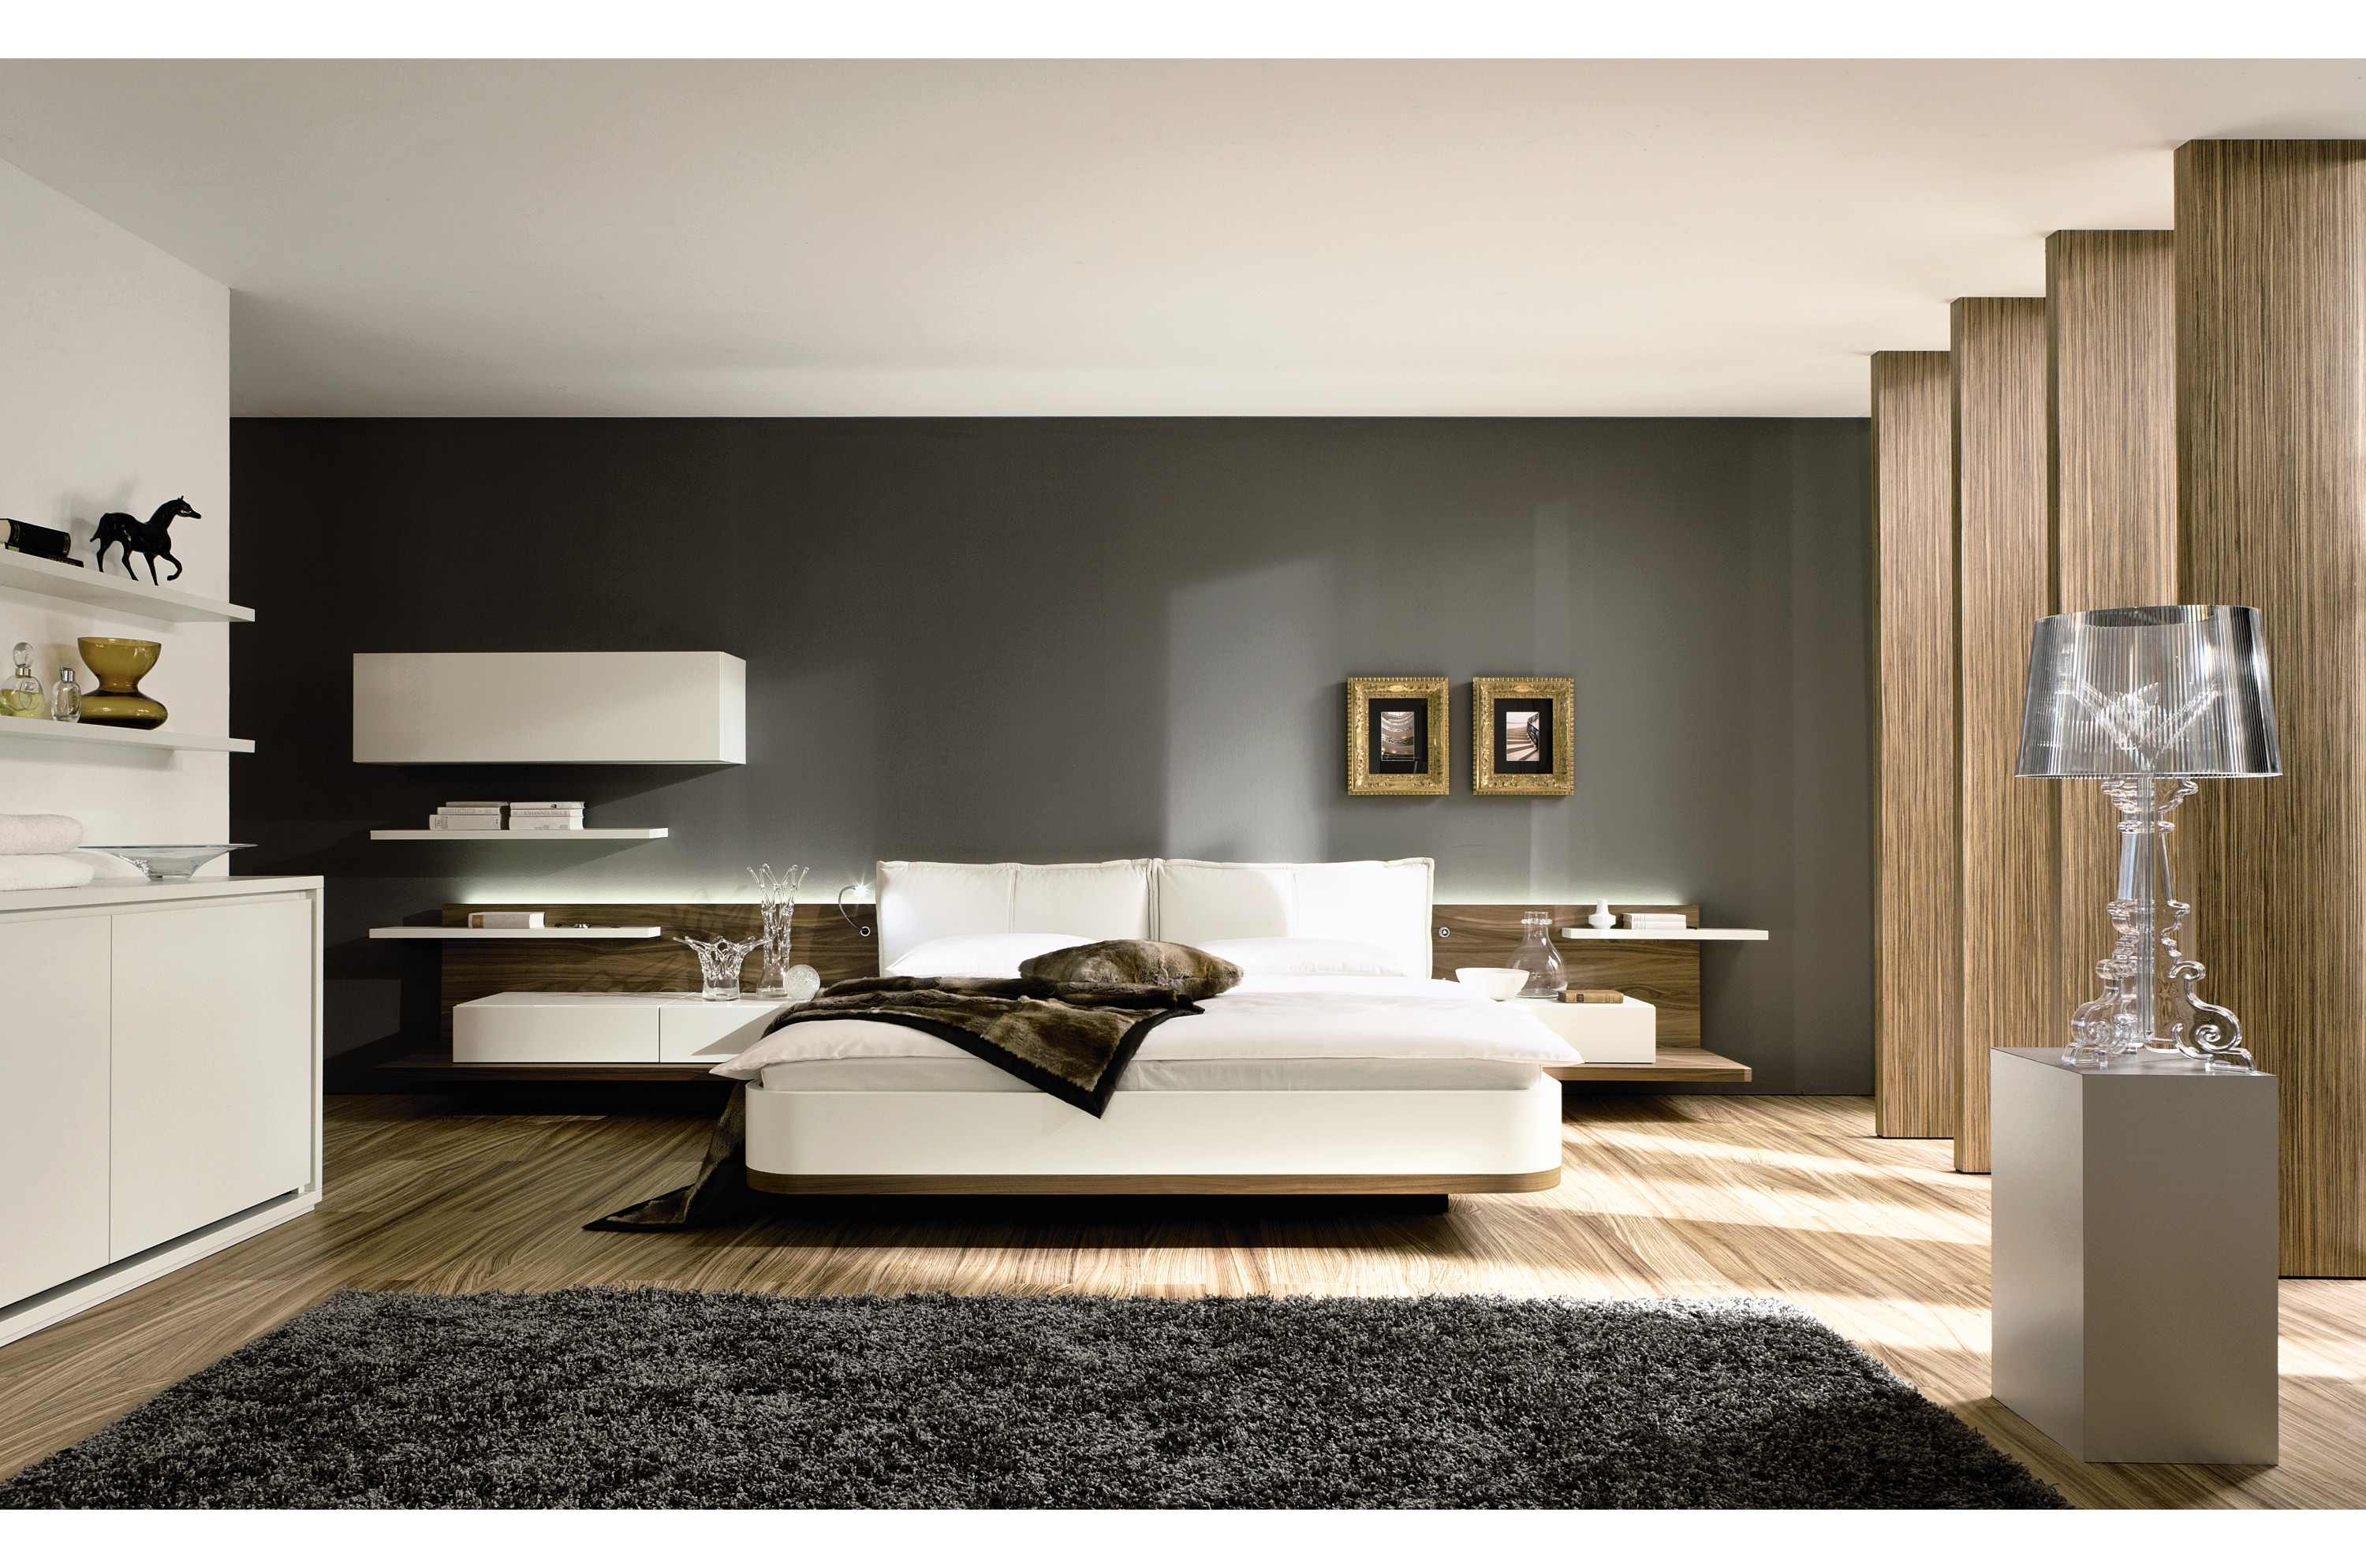 modern bedroom innovation bedroom ideas interior design and many kodok demo